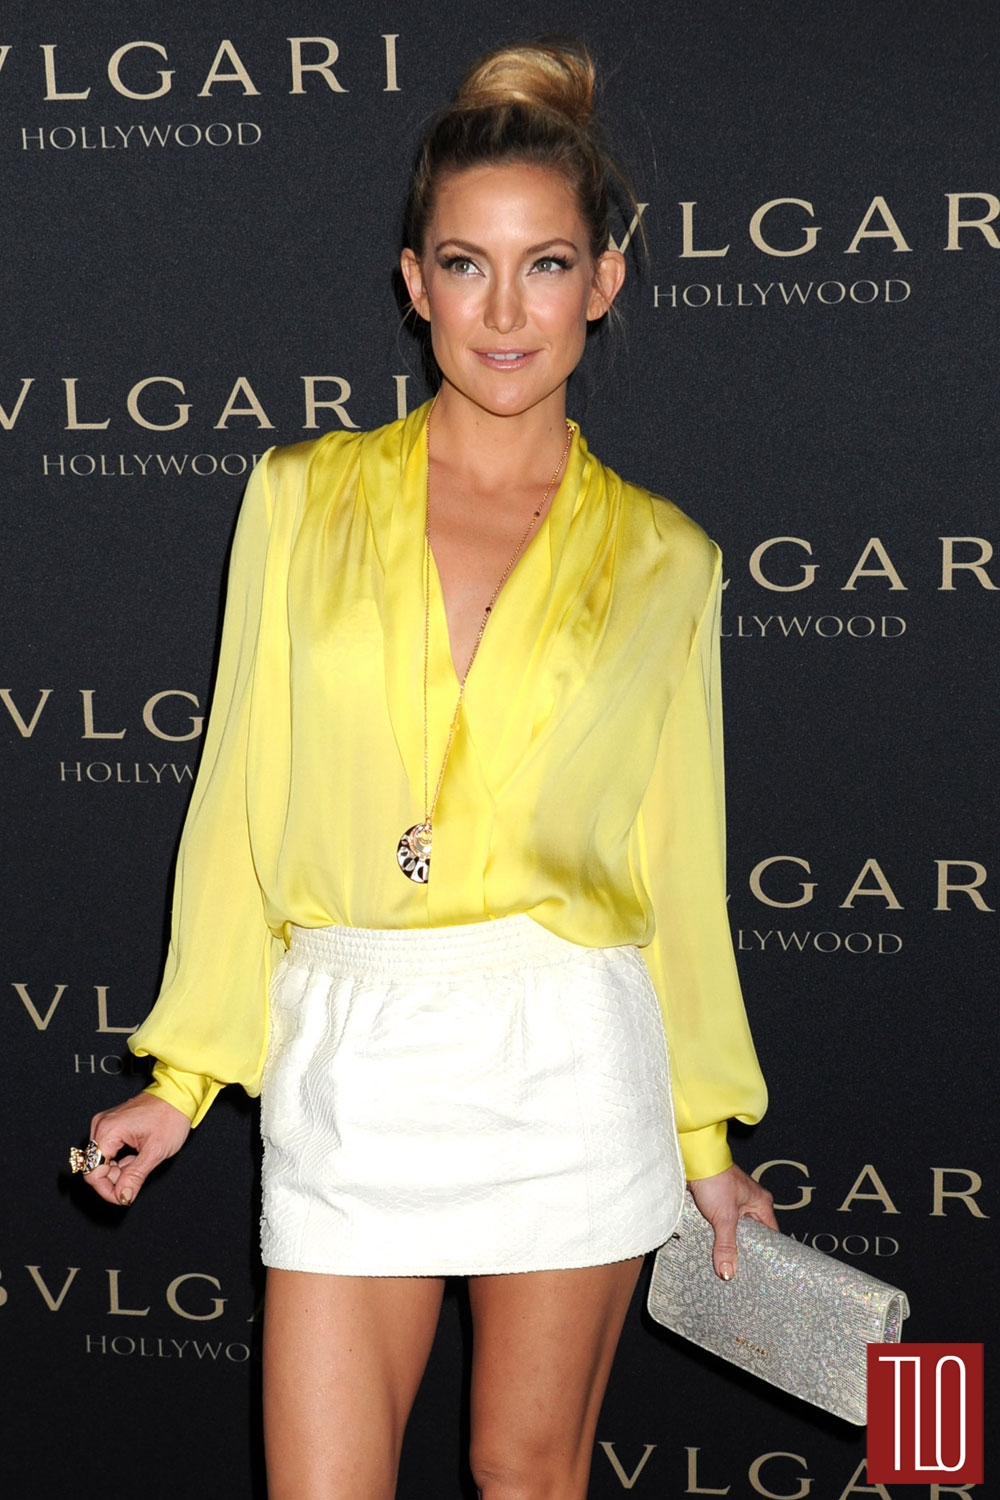 Kate-Hudson-Emilio-Pucci-Bulgari-Decades-Glamour-Tom-Lorenzo-Site-TLO (1)